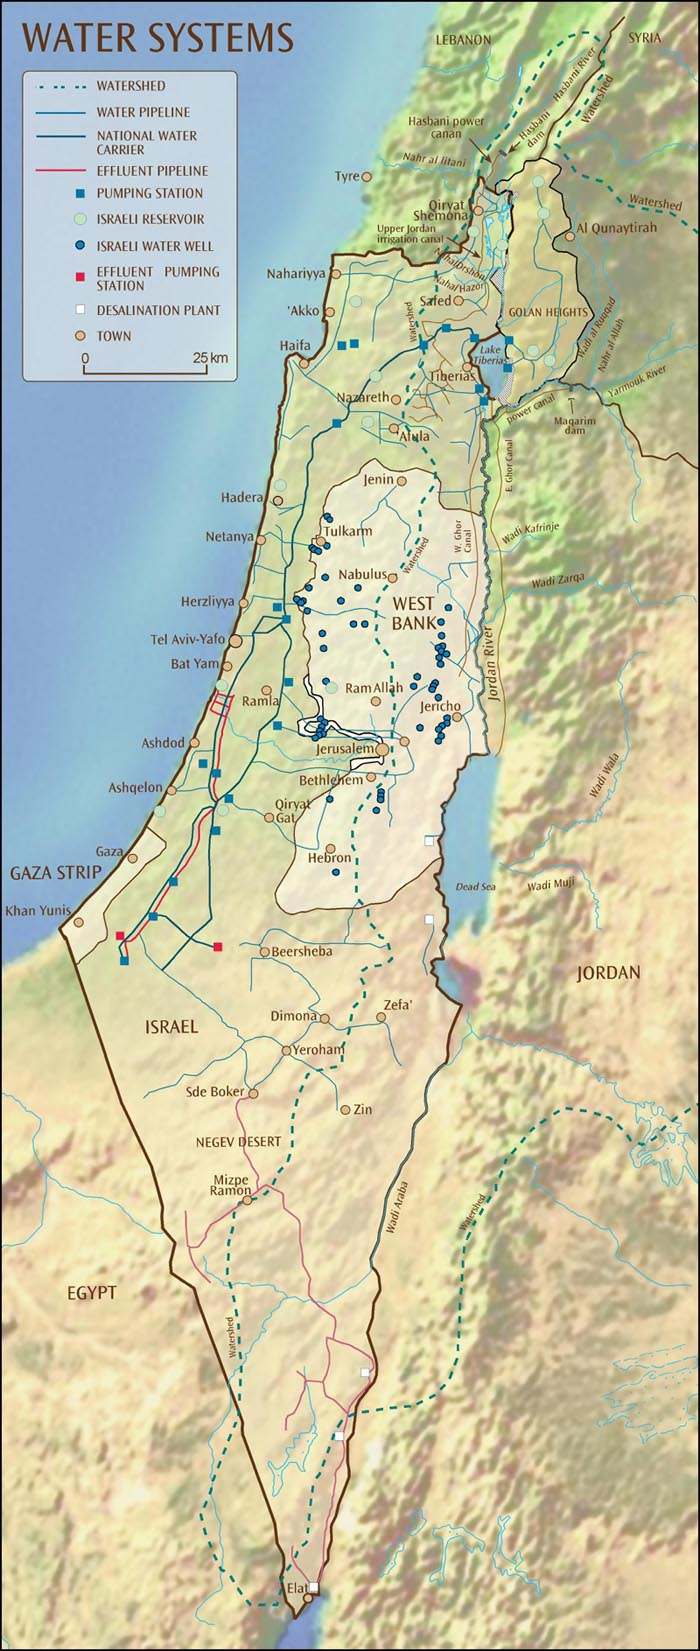 Israel water systems map.jpg